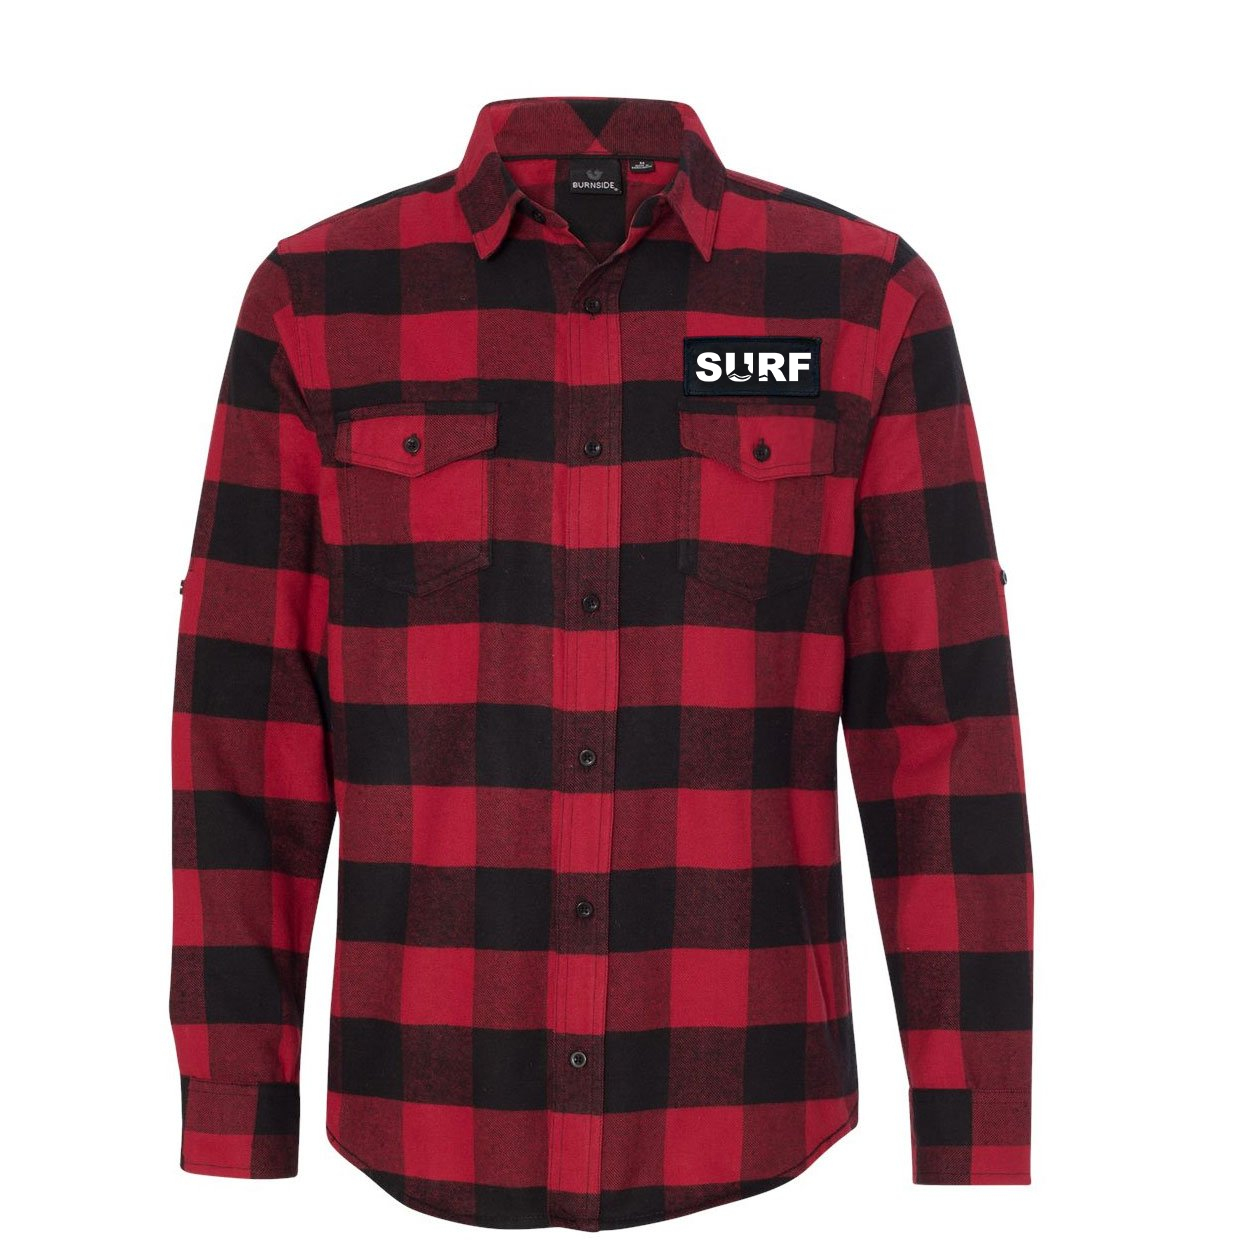 Surf Wave Logo Classic Unisex Long Sleeve Woven Patch Flannel Shirt Red/Black Buffalo (White Logo)